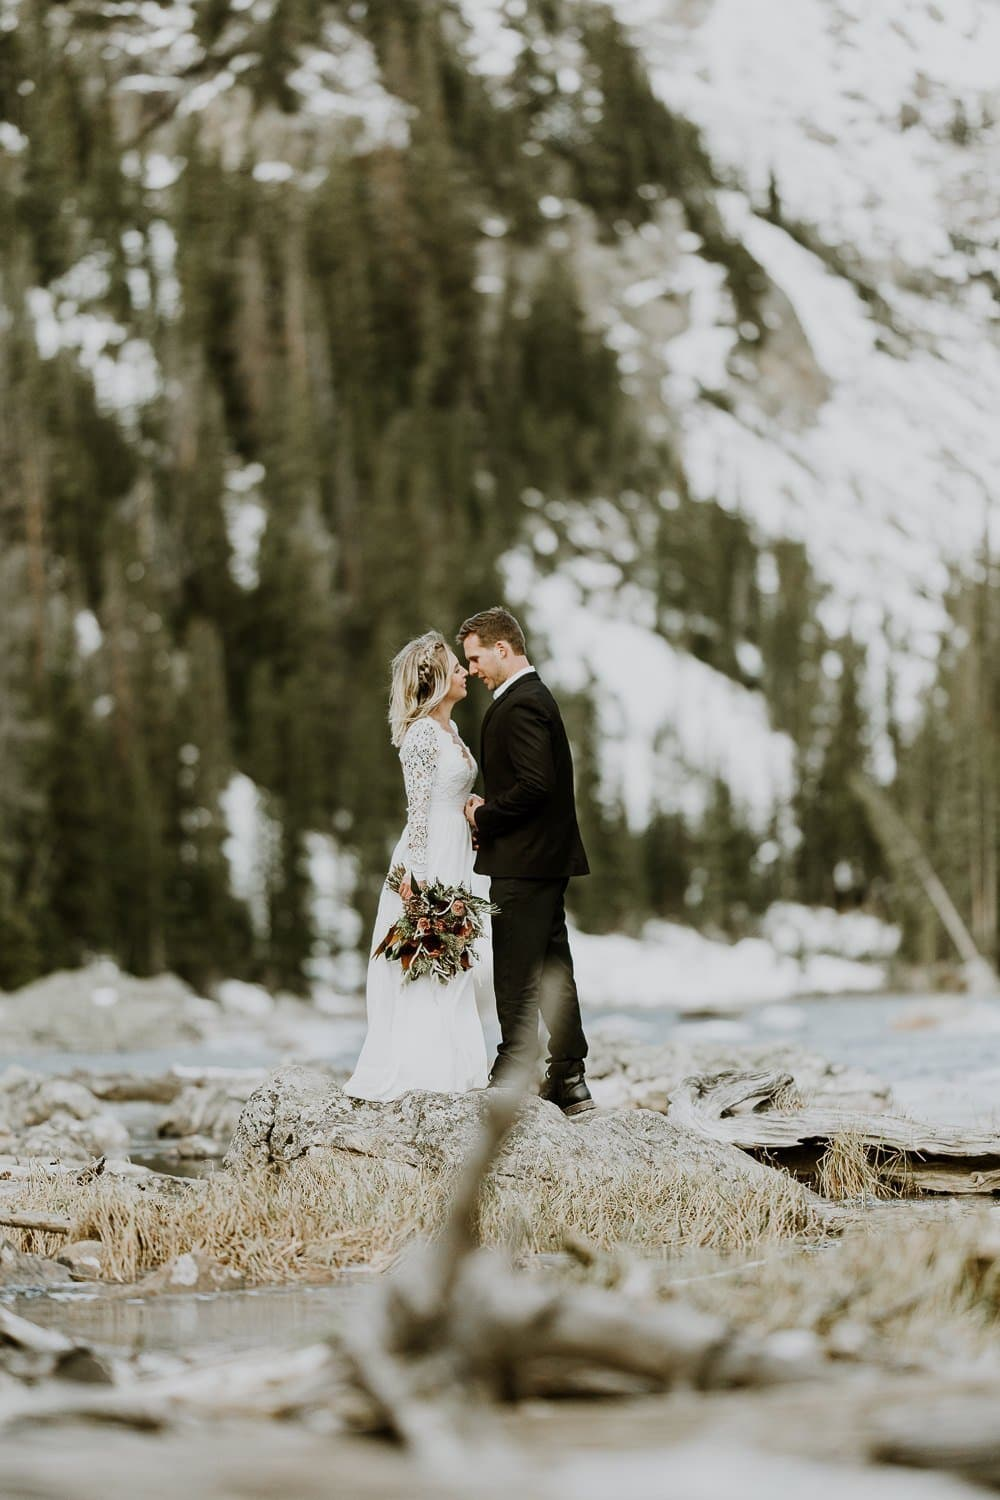 DREAM LAKE ADVENTUROUS ELOPEMENT I GABBY + ROBERT I Intimate Wedding Photographer I ROCKY MOUNTAIN ELOPEMENT PHOTOGRAPHER| JUSTYNA E BUTLER PHOTOGRAPHY | ROCKY MOUNTAIN NATIONAL PARK ELOPEMENT PHOTOGRAPHER| COLORADO MOUNTAIN ADVENTUROUS ELOPEMENT PHOTOGRAPHER|INTIMATE WEDDING